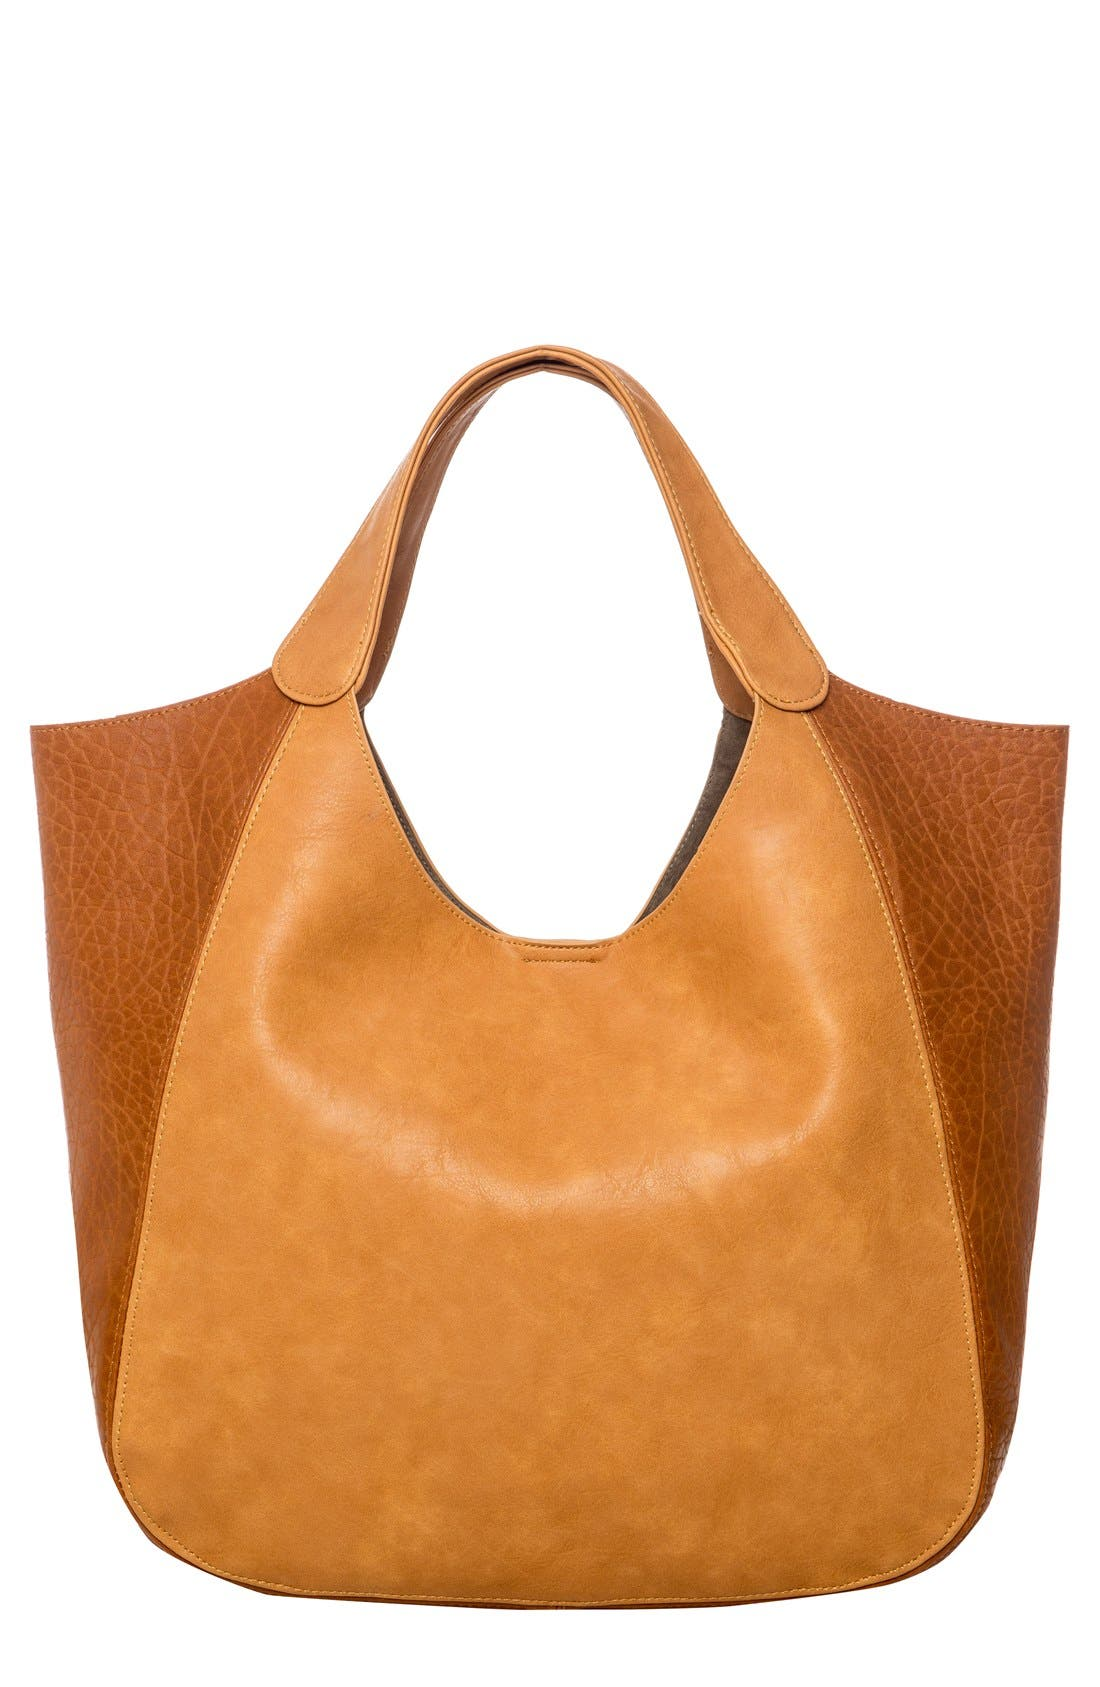 URBAN ORIGINALS Masterpiece Vegan Leather Tote